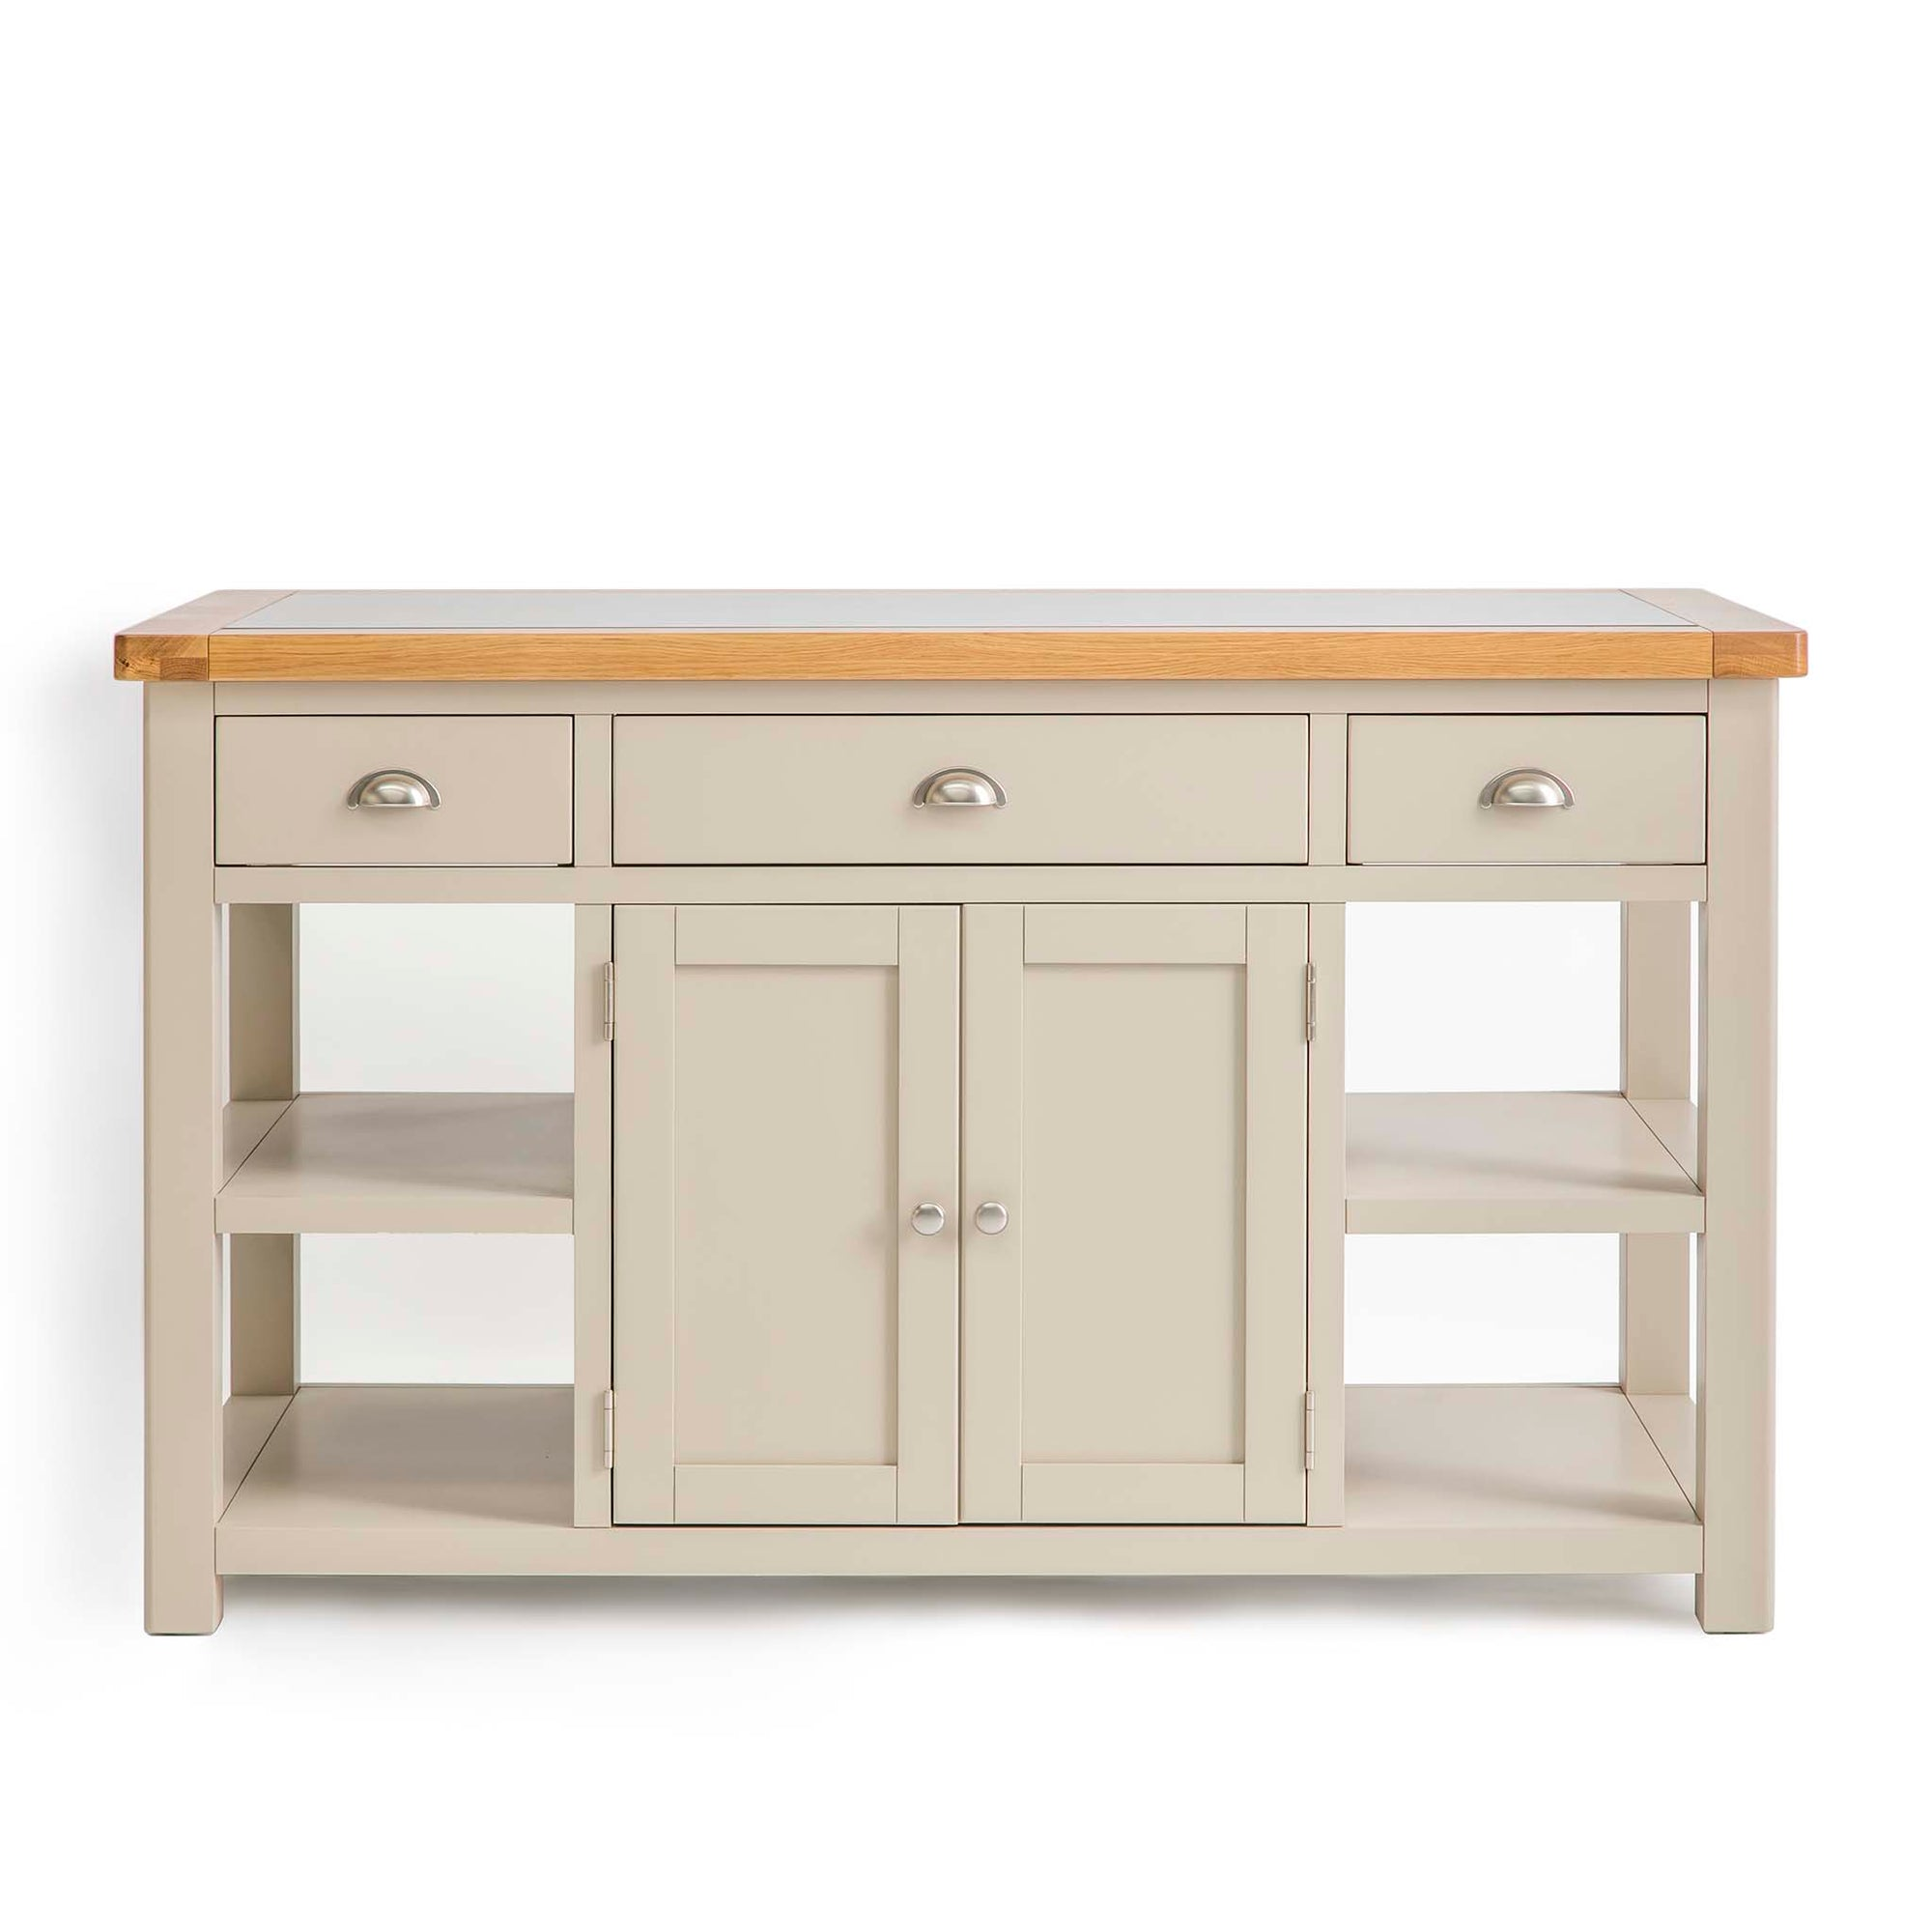 Padstow Stone Grey Large Kitchen Island by Roseland Furniture